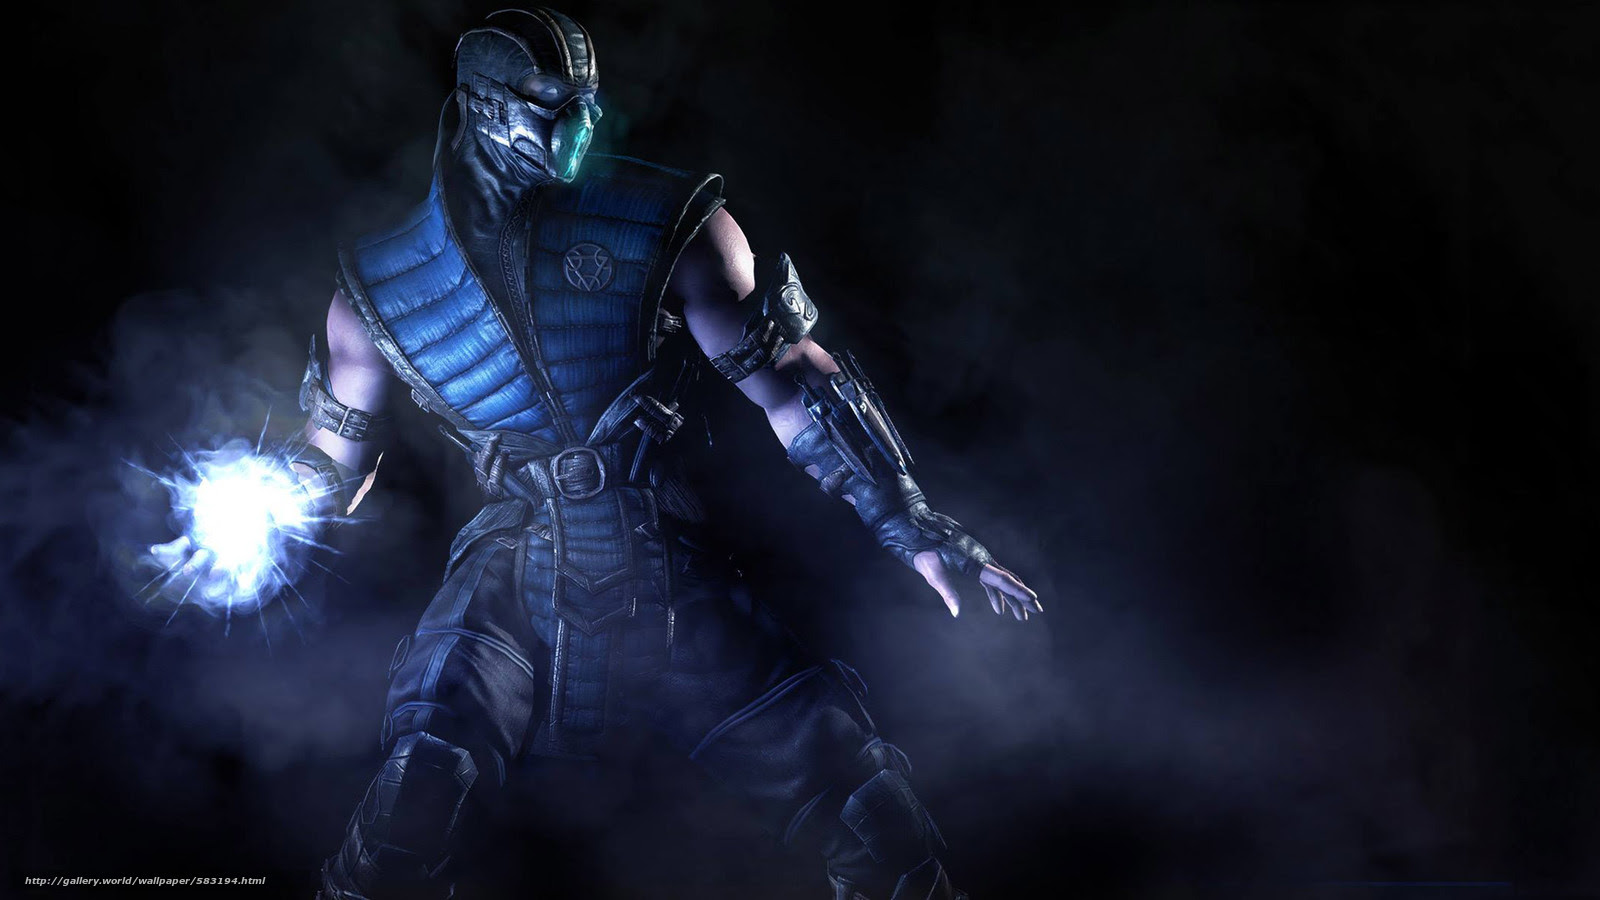 Download Wallpaper Scorpion Mortal Kombat Mortal Kombat X Games